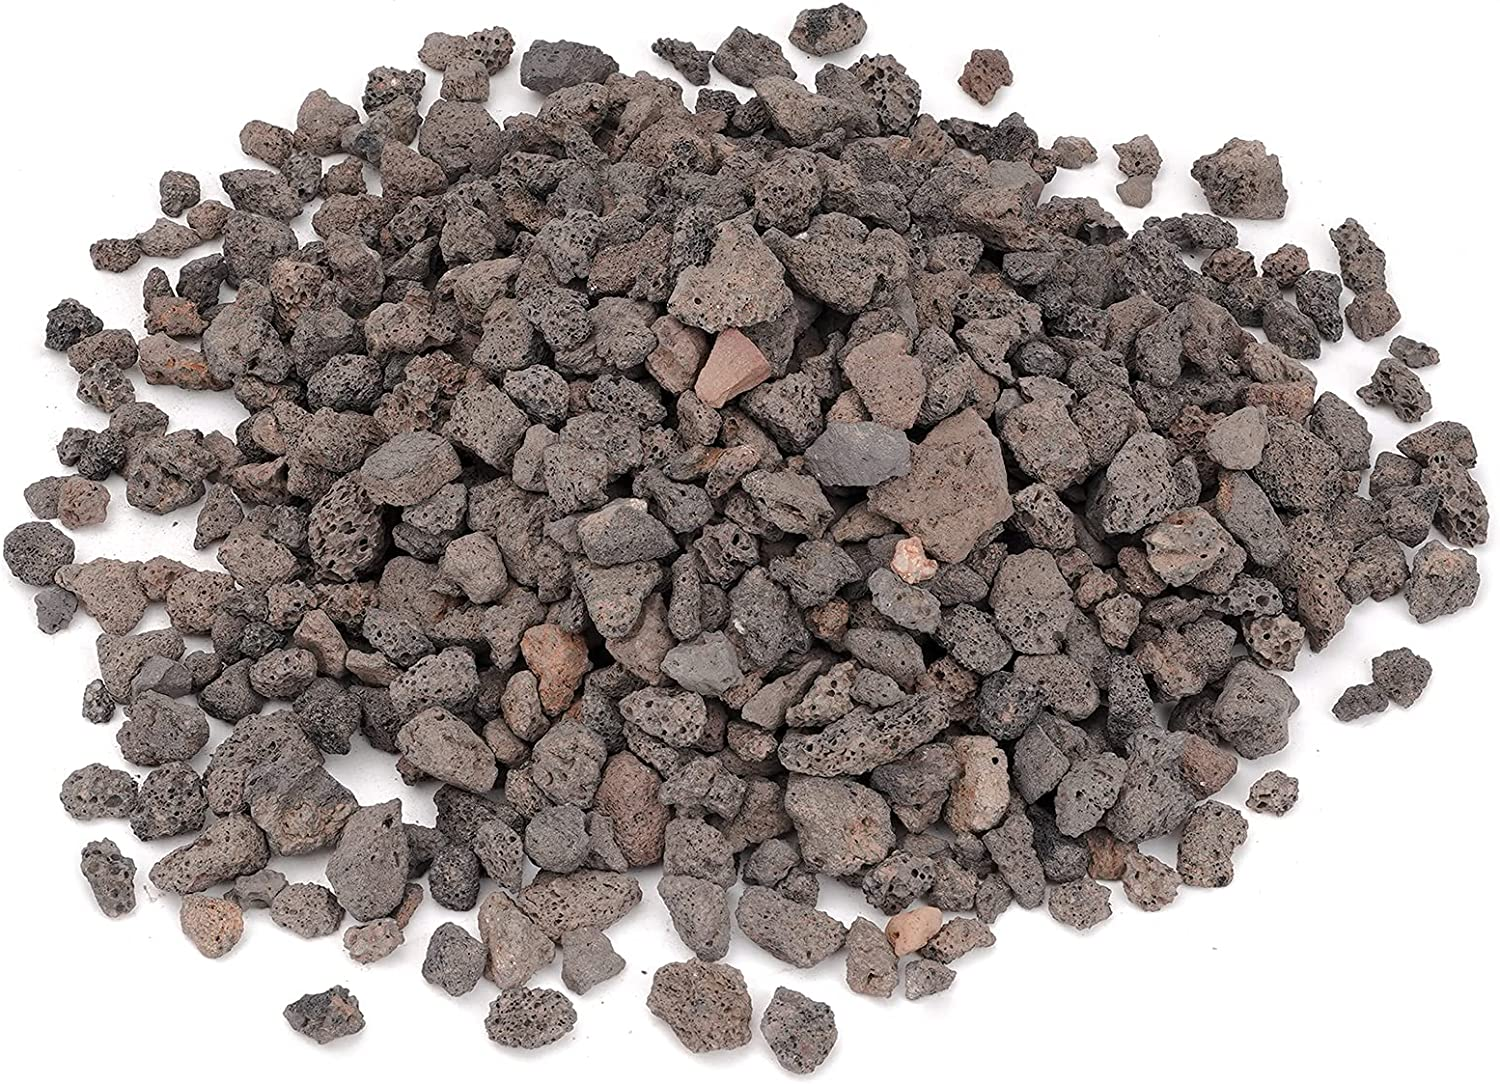 Skyflame Black Natural Stones Lava Rock Granules for Gas Fire Pit | Fireplace | Gas Log Set | BBQ Grill | Garden Landscaping Decoration | Cultivation of Potted Plants | Indoor Outdoor Use, 10-lb Bag